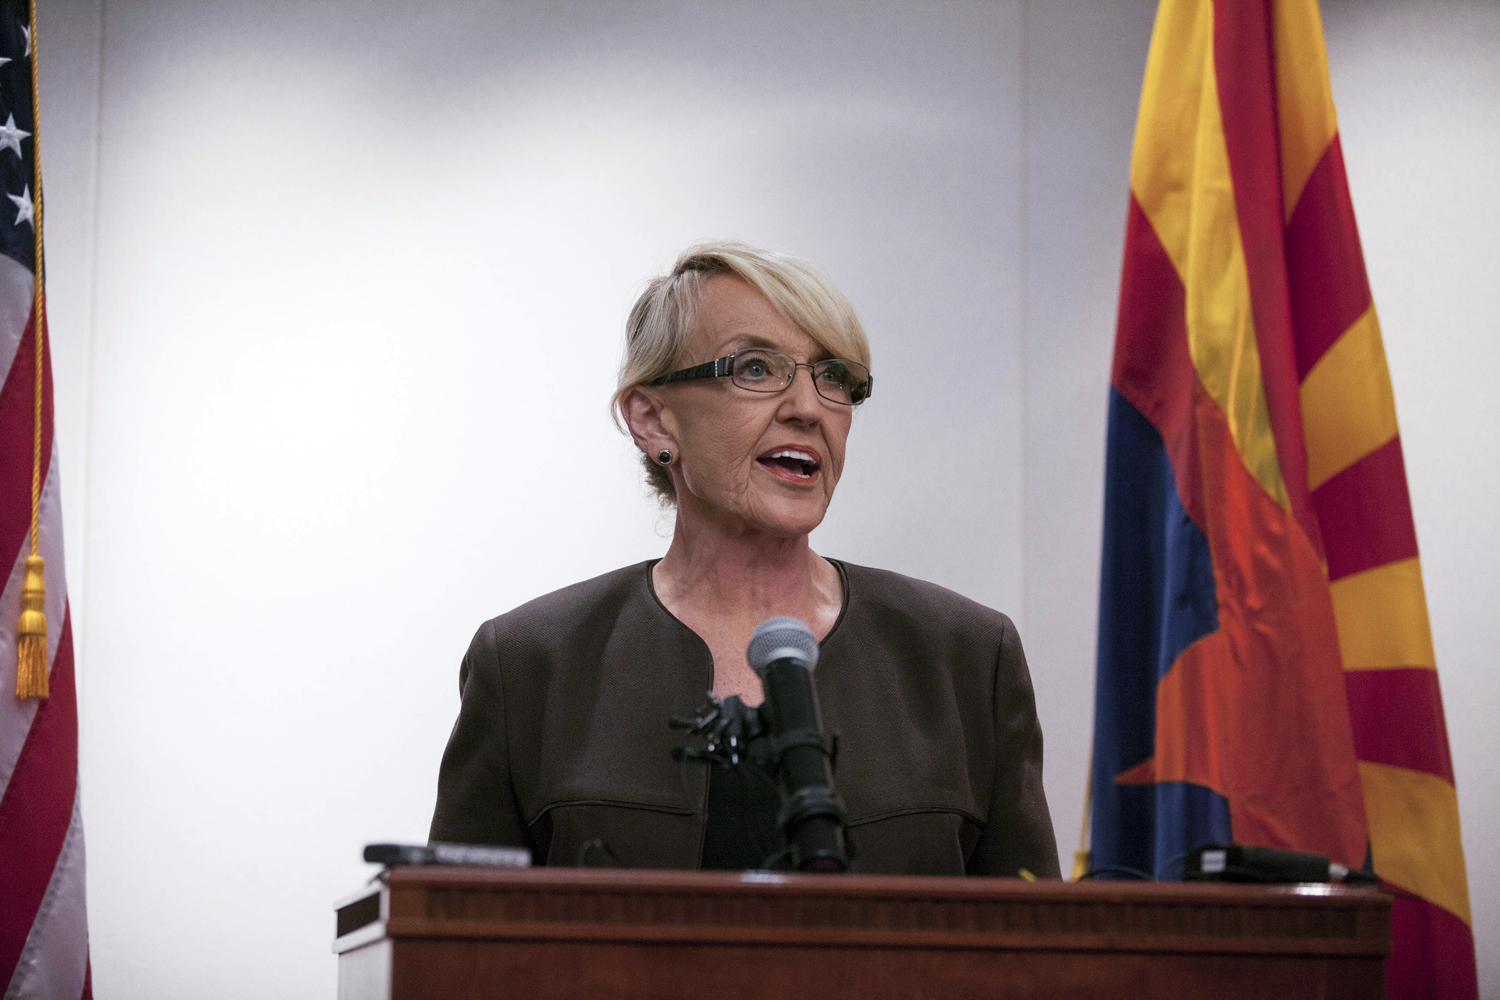 Arizona Governor Jan Brewer. On Tuesday, she signed a bill allowing snap inspections of the state's abortion clinics